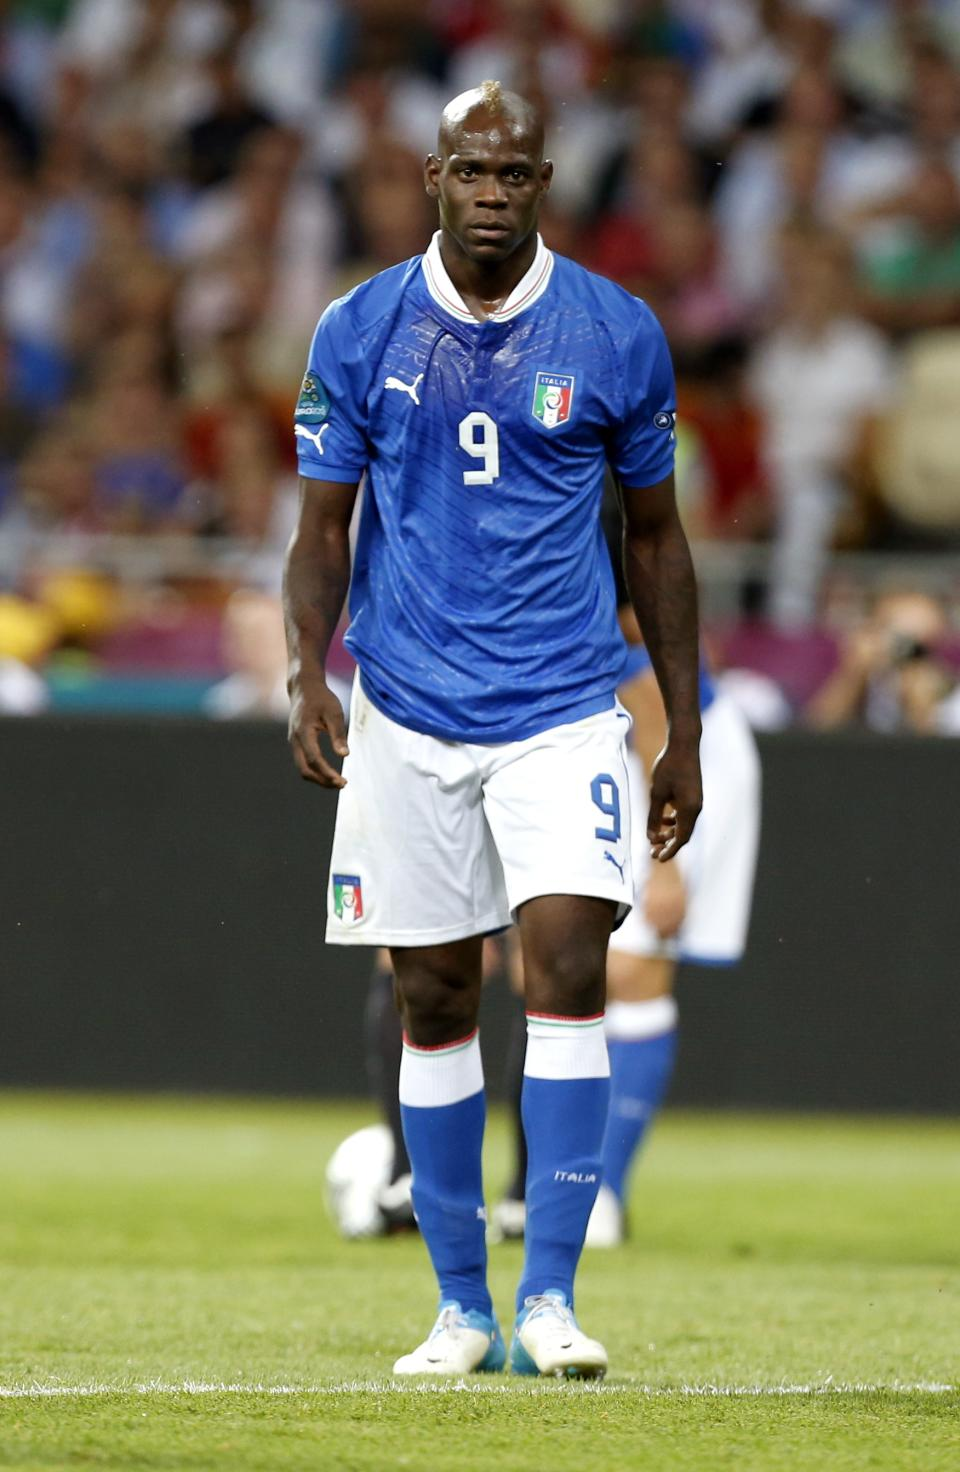 Italy's Mario Balotelli walks on the pitch during the Euro 2012 soccer championship final  between Spain and Italy in Kiev, Ukraine, Sunday, July 1, 2012. (AP Photo/Jon Super)